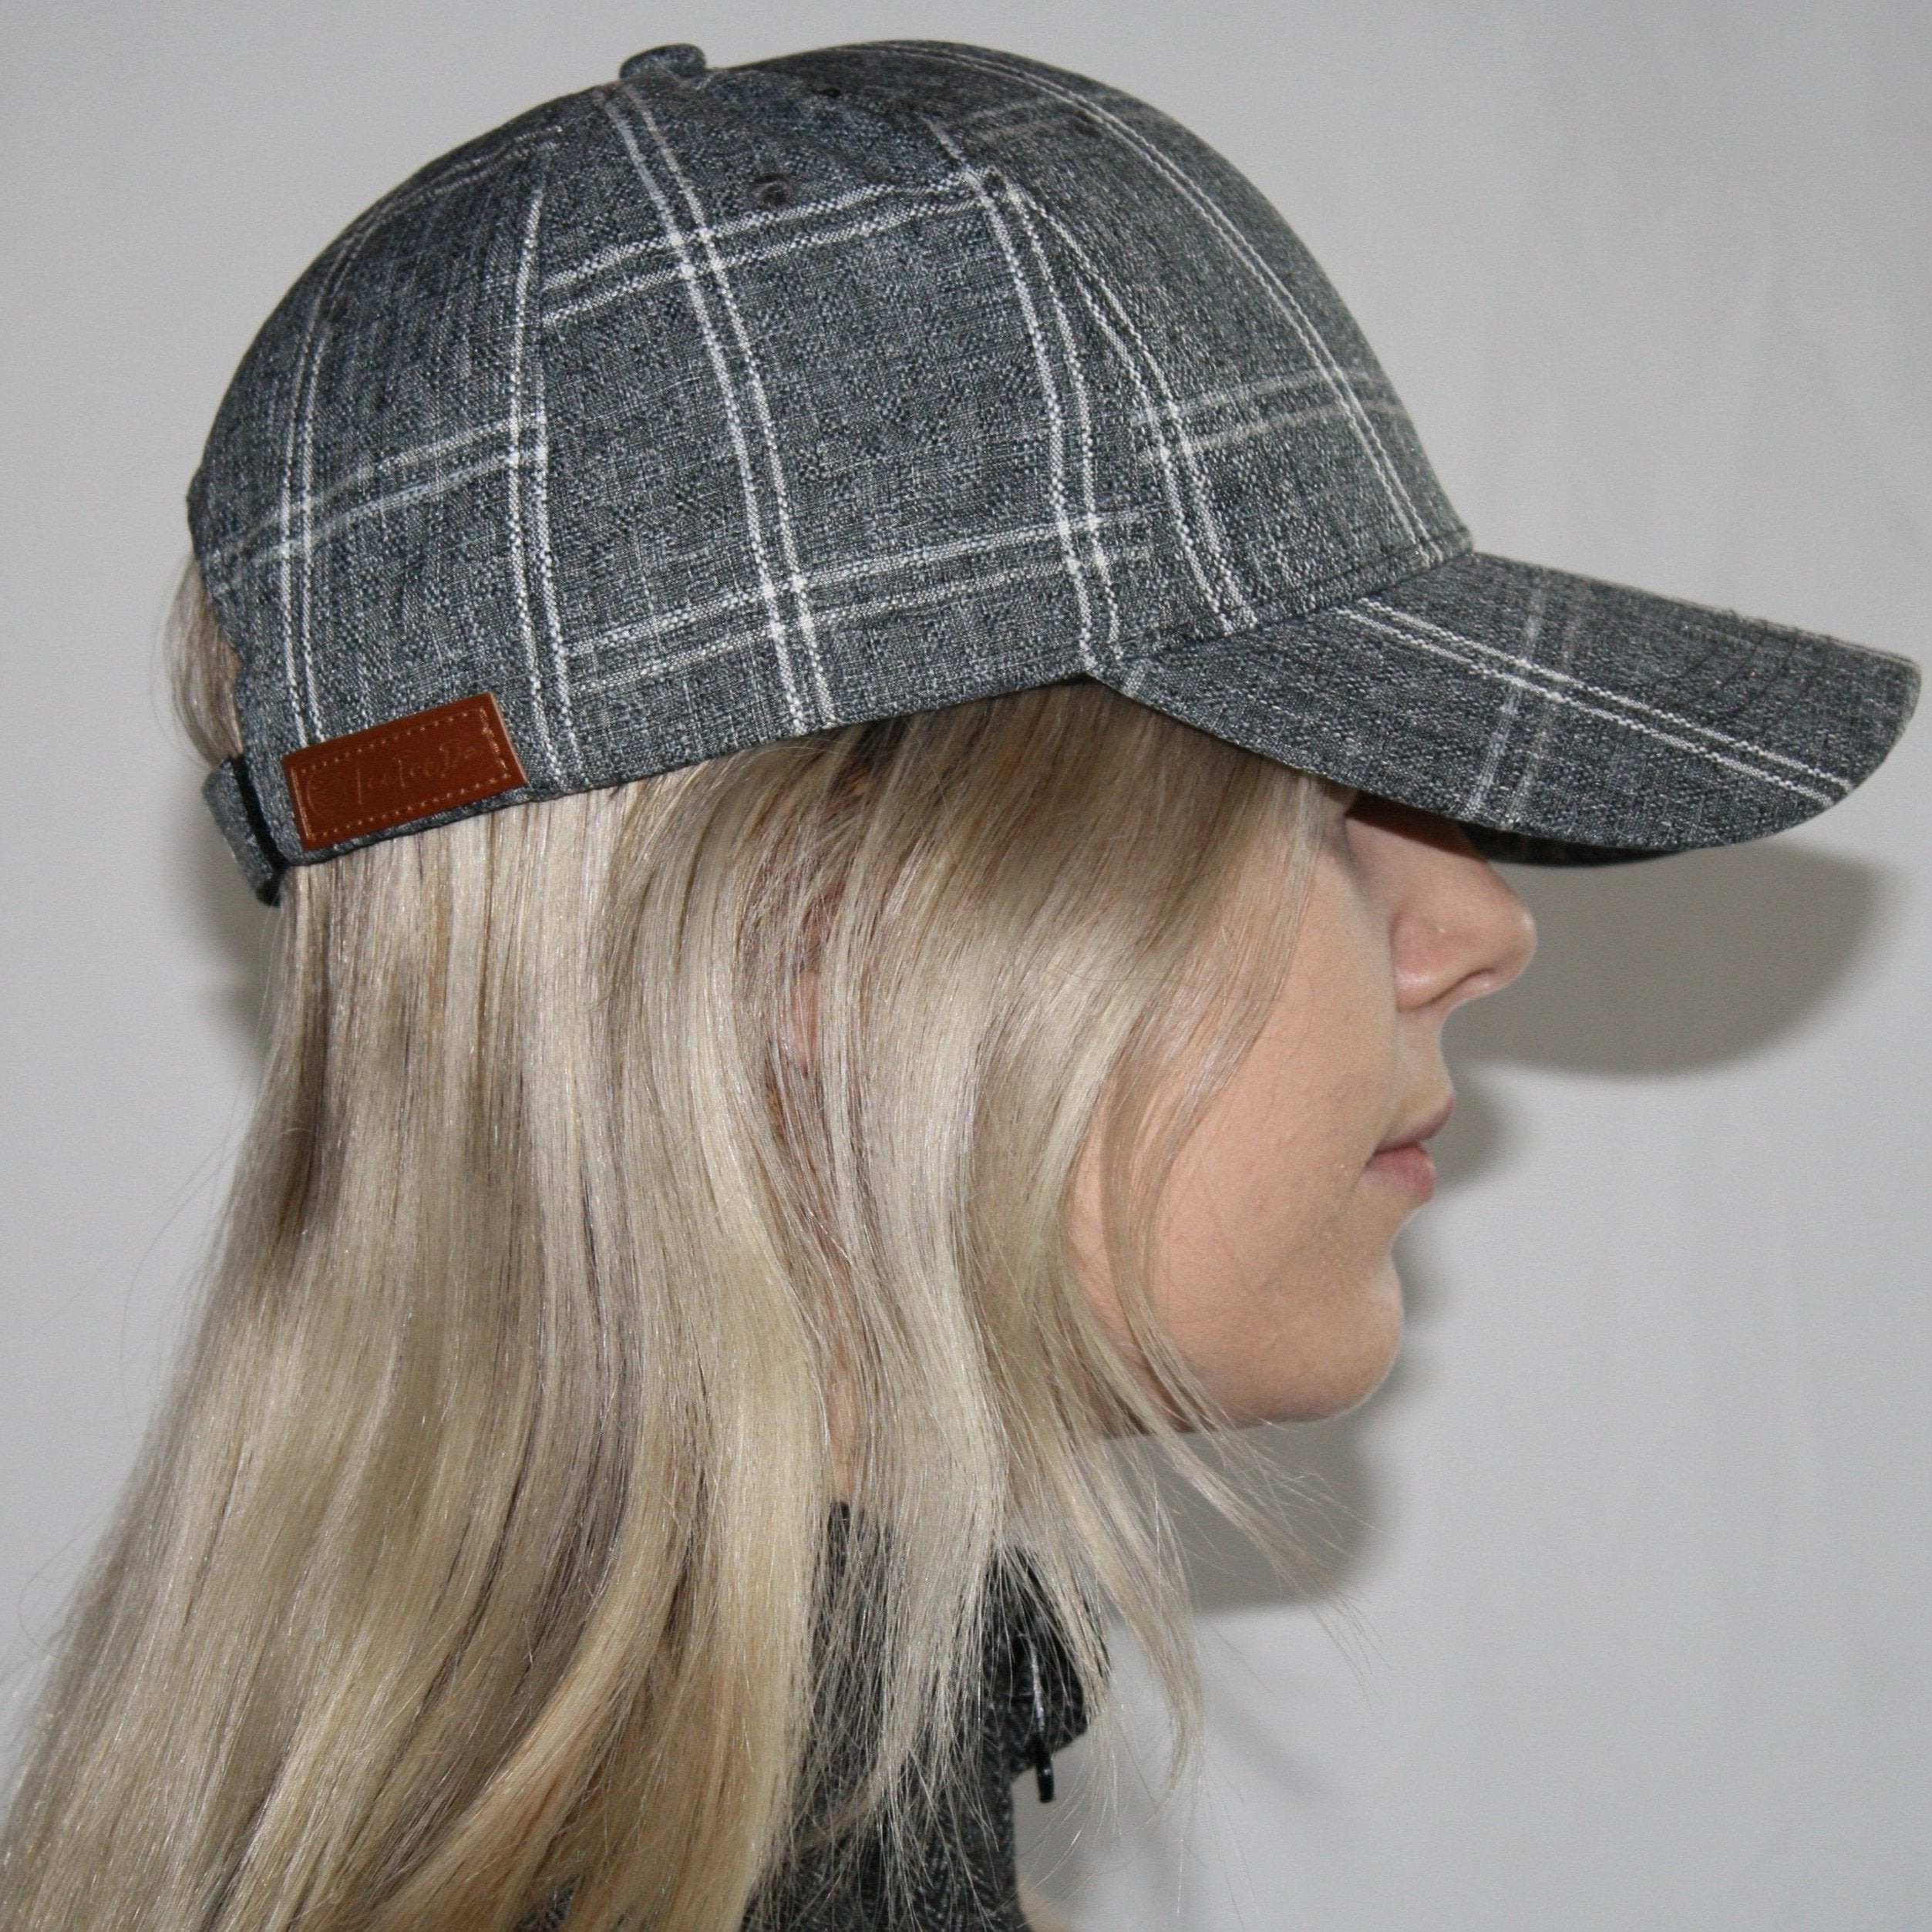 LTD Women's Golf Hat - Grey and White Plaid, Velcro Adjustable Fit